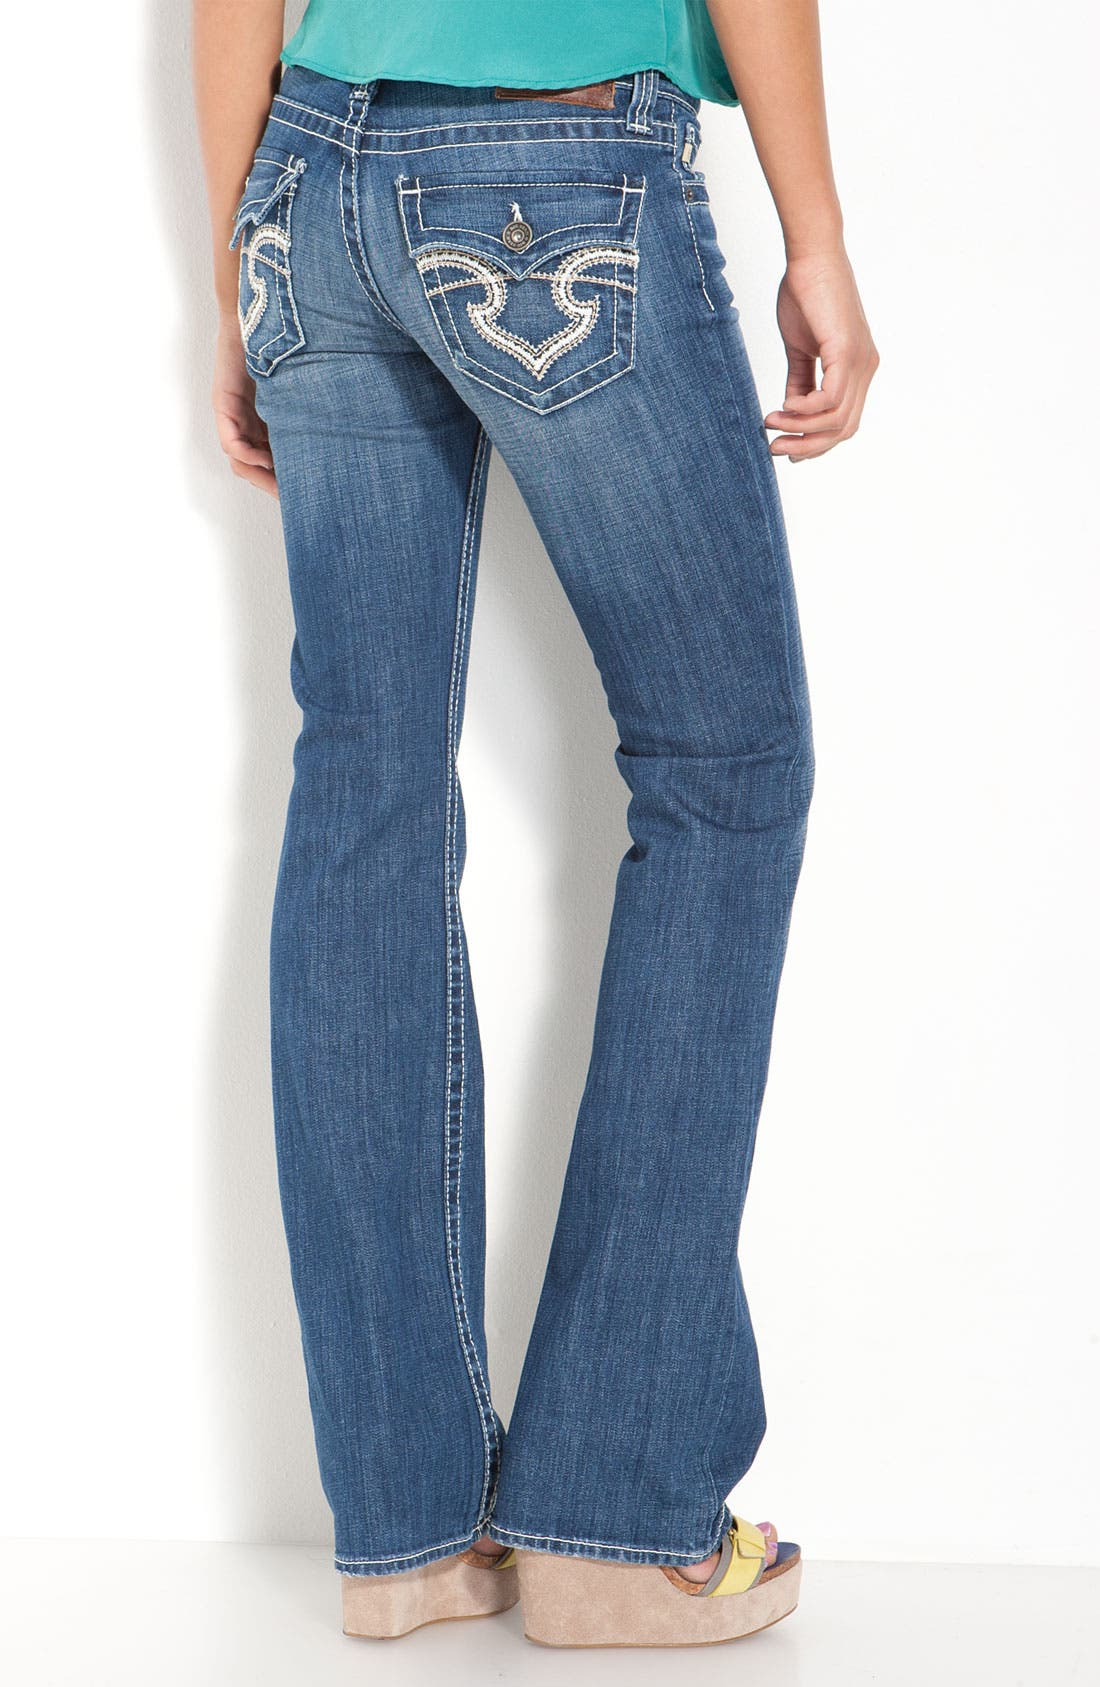 Main Image - Big Star 'Remy' Bootcut Jeans (Junction Wash) (Juniors Regular & Long)